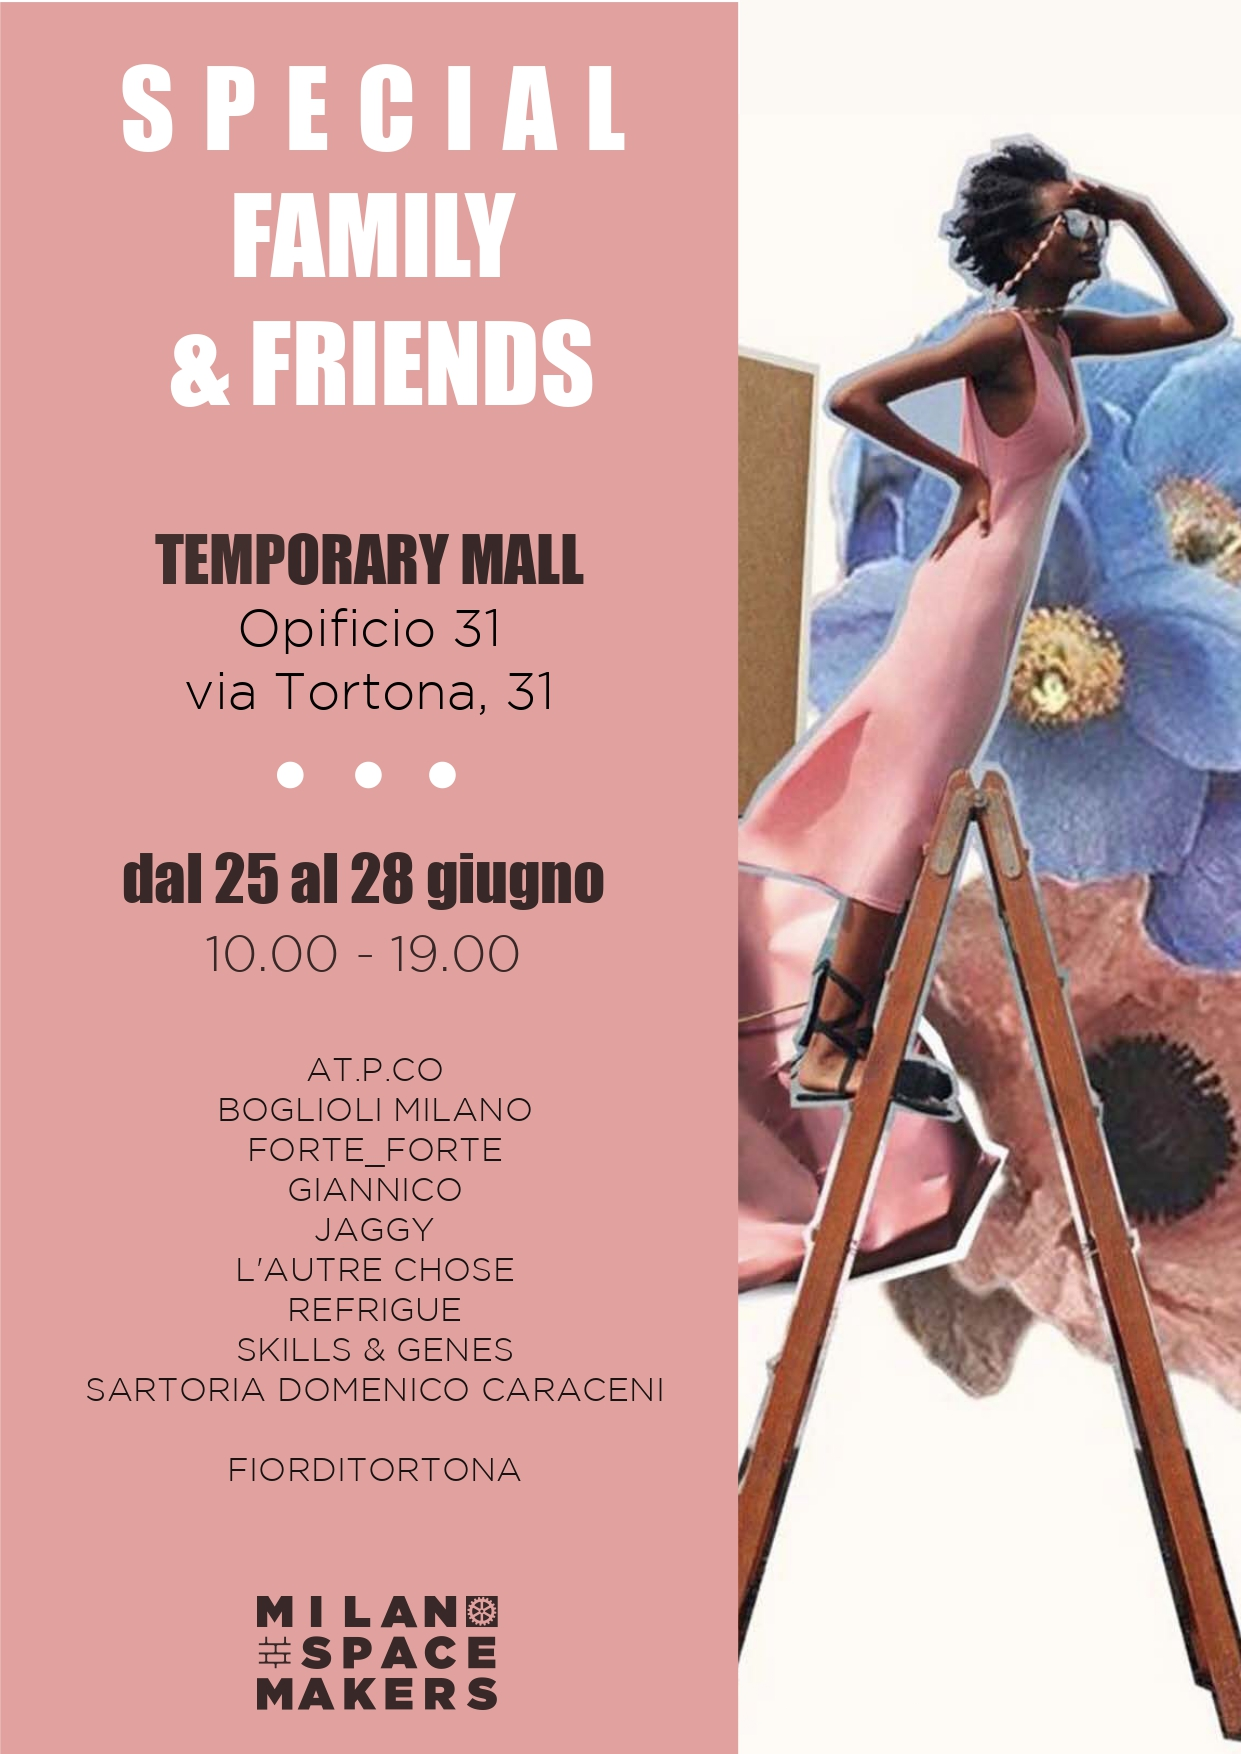 Special Family&Friends - Temporary mall in via Tortona 31 - 1